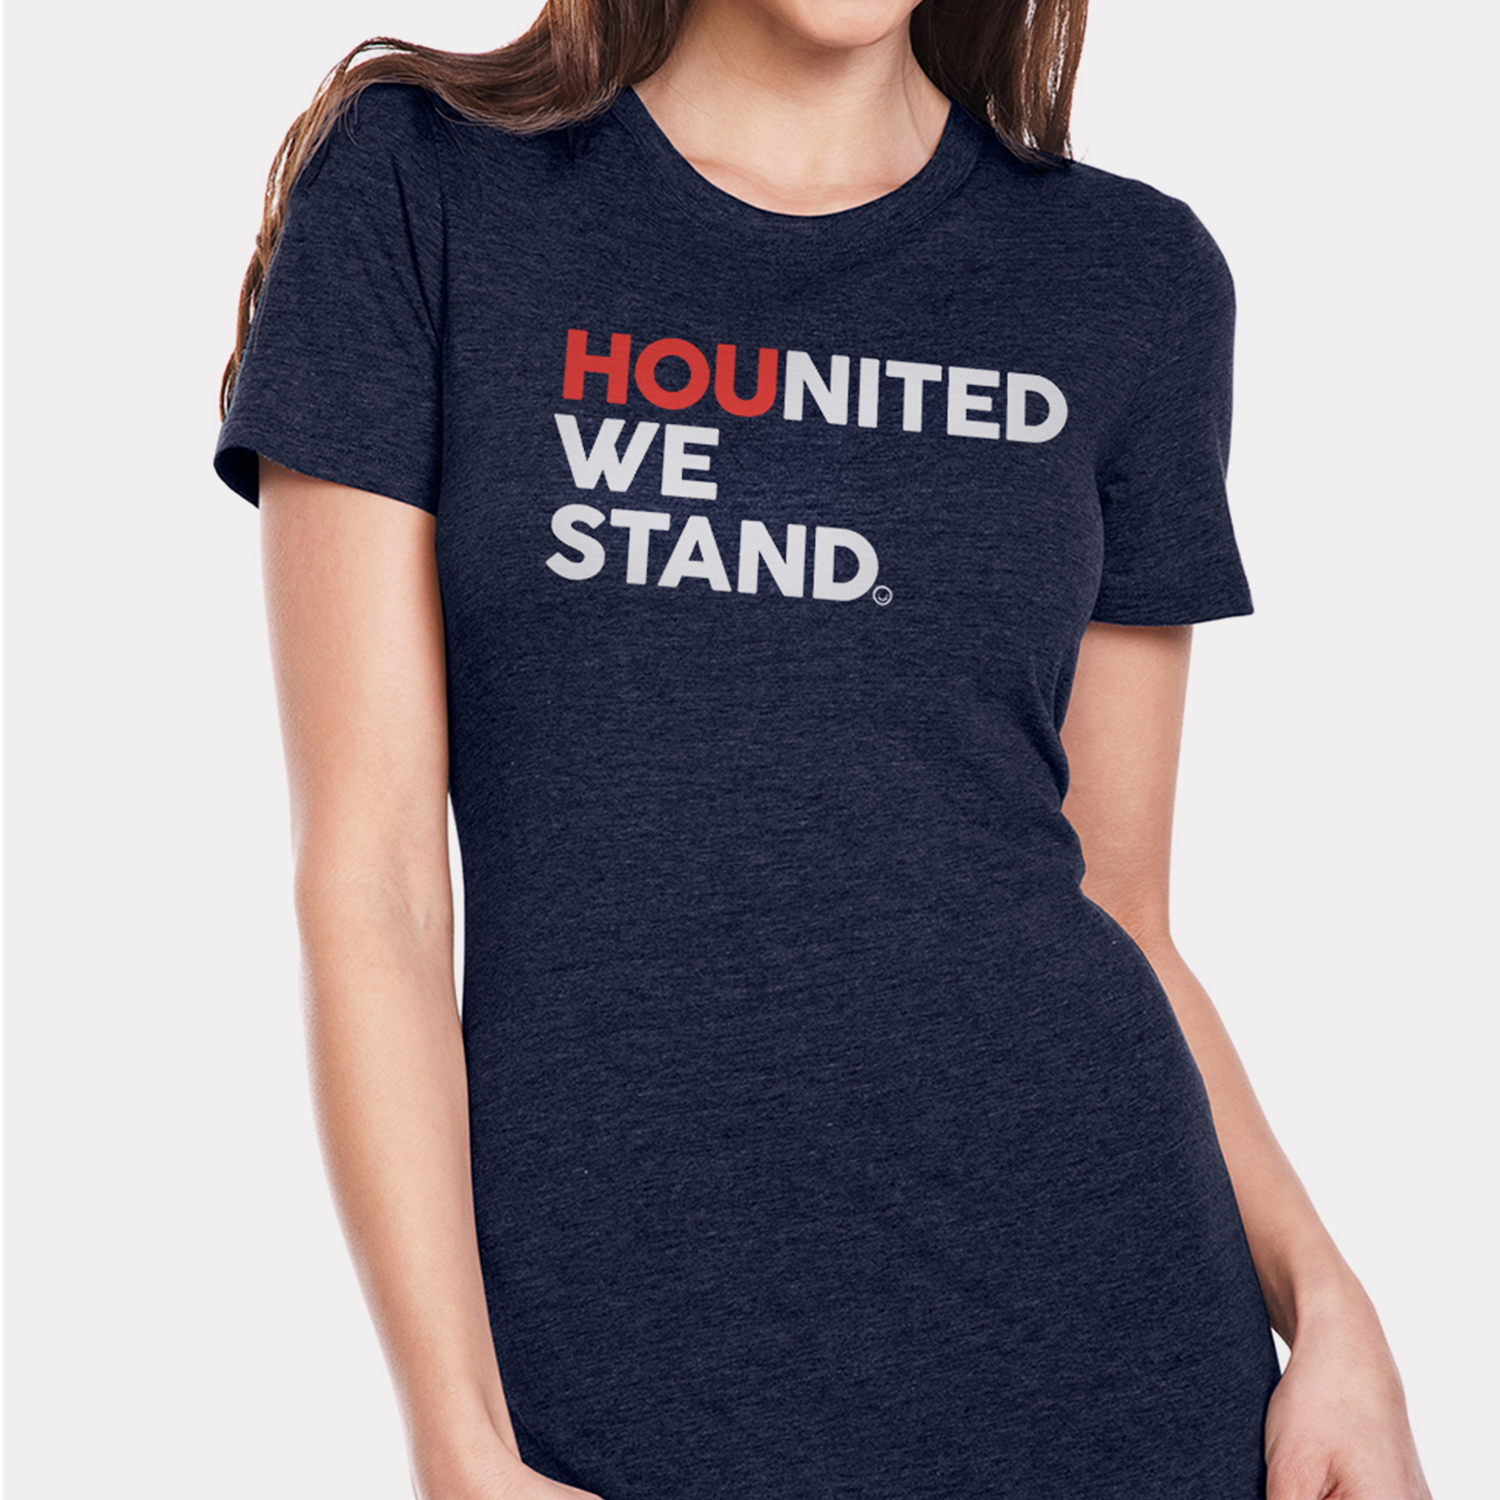 HappyBombs-HounitedWeStand-Blue-Womens-New.png